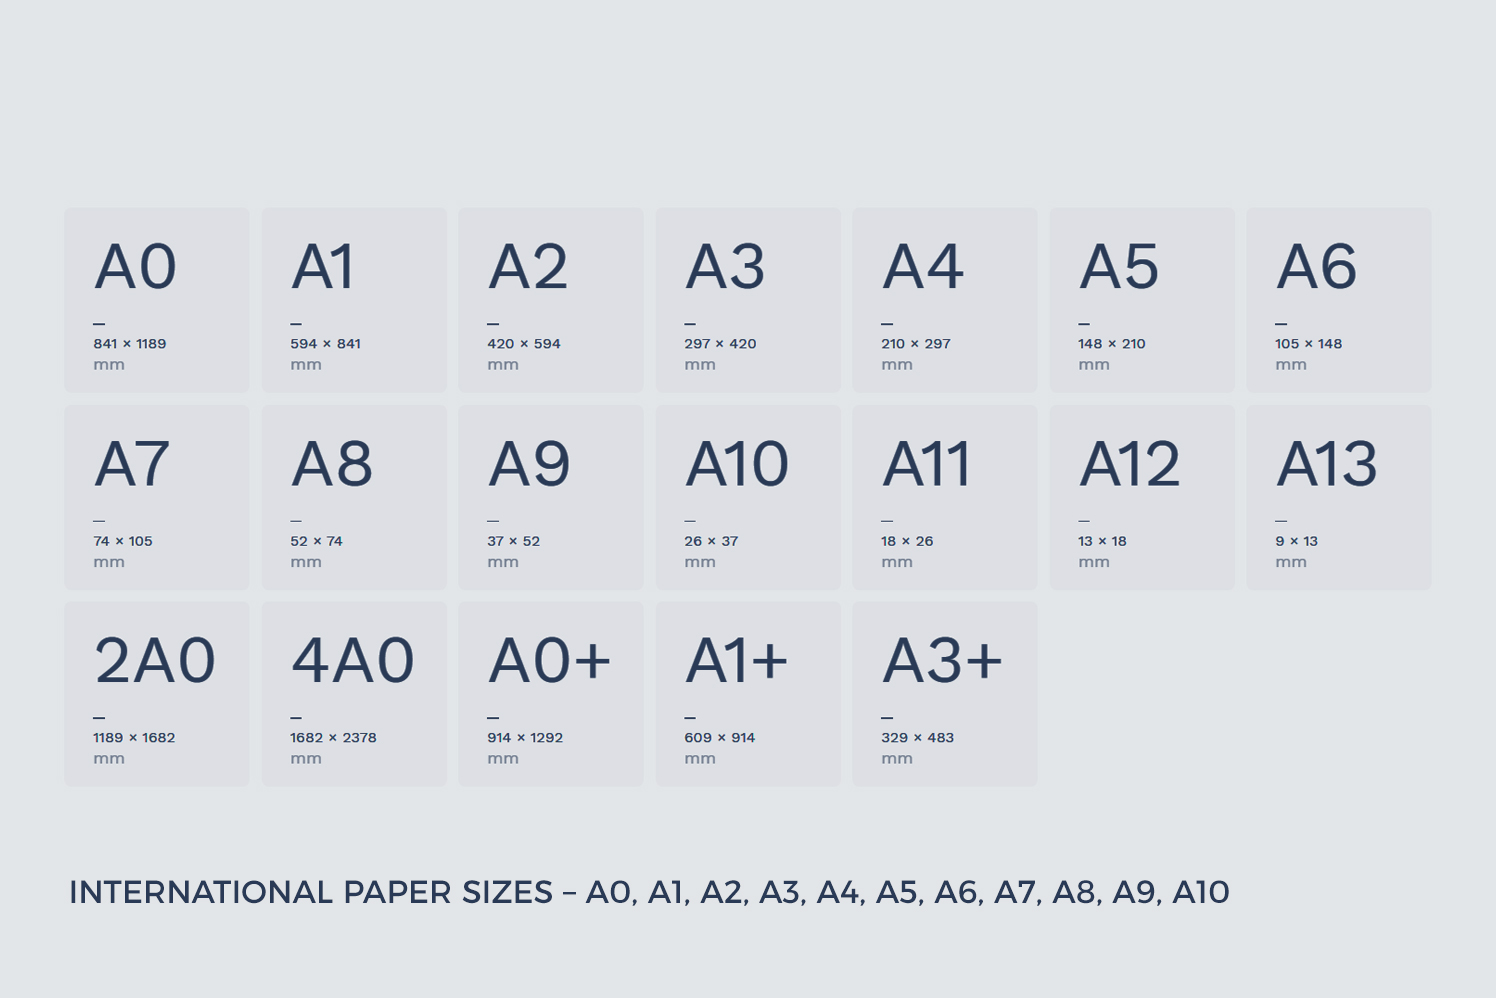 International paper sizes